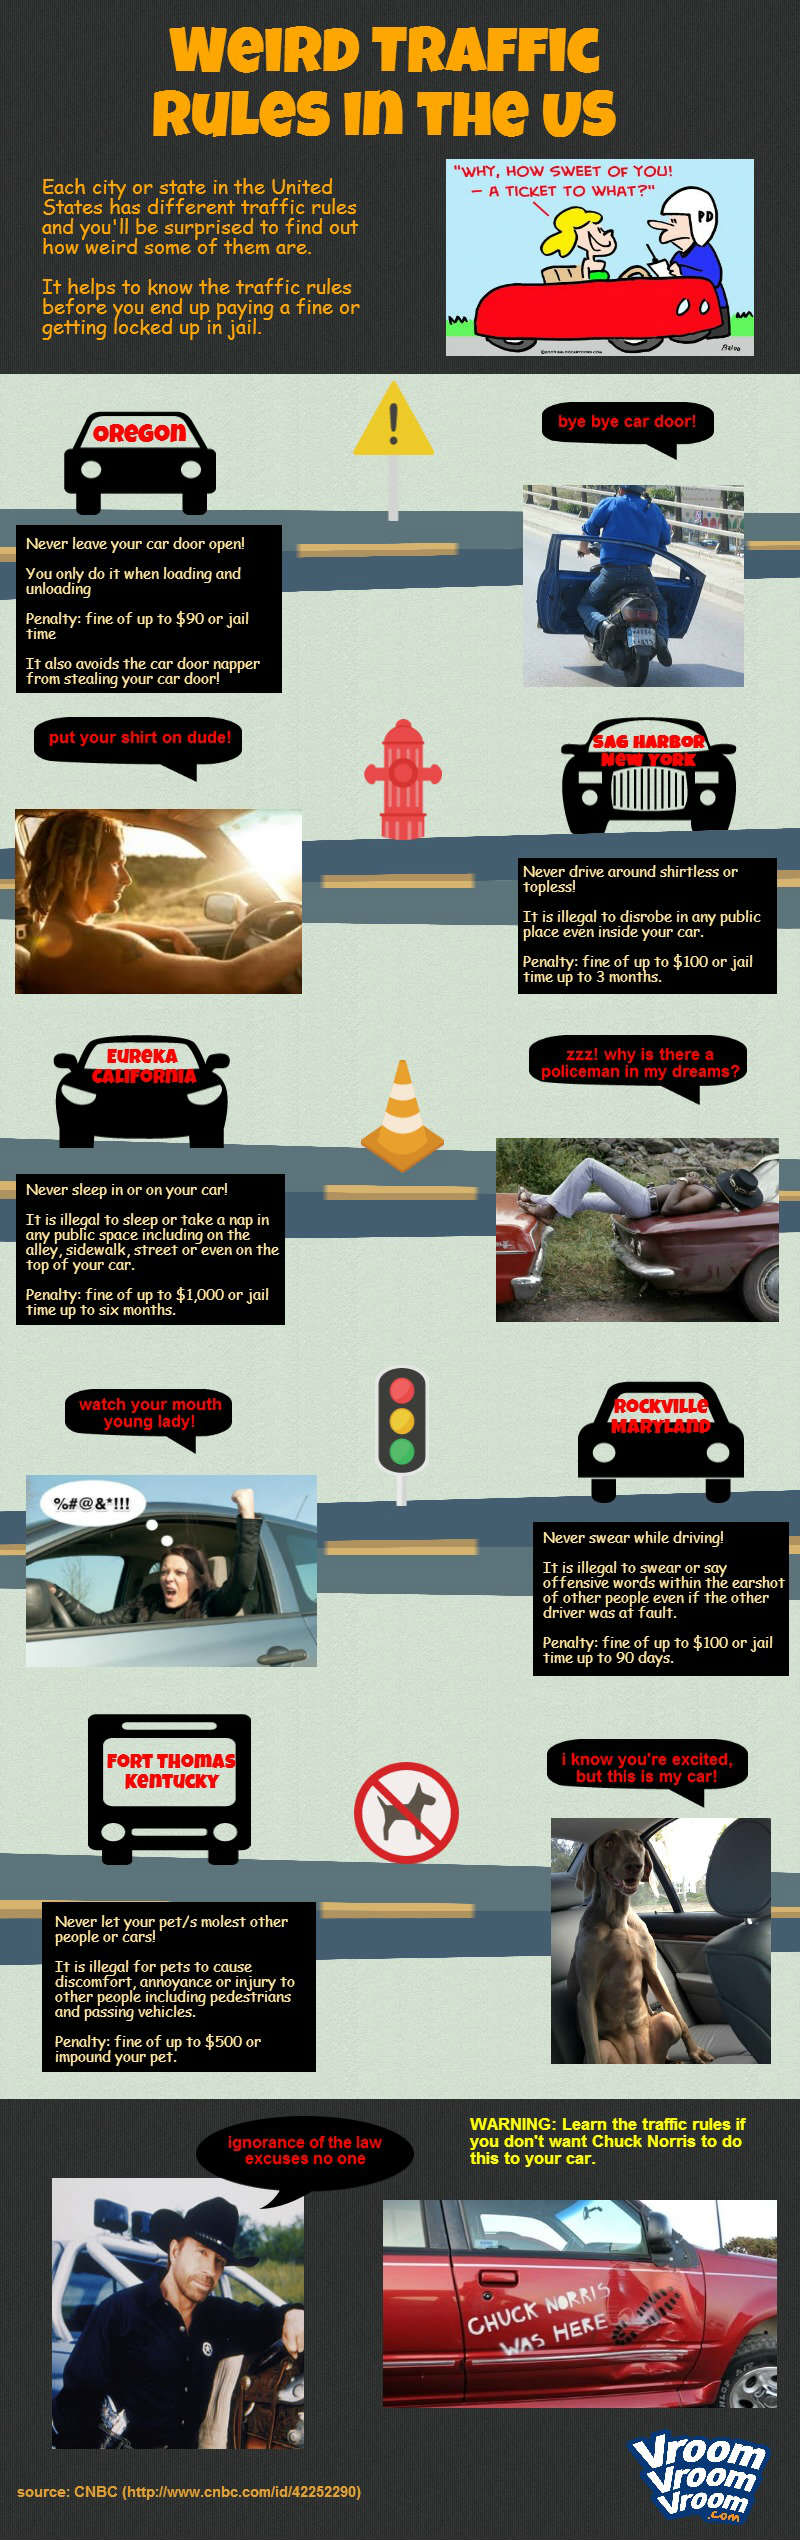 Weird Traffic Rules in the USA (Infographic)